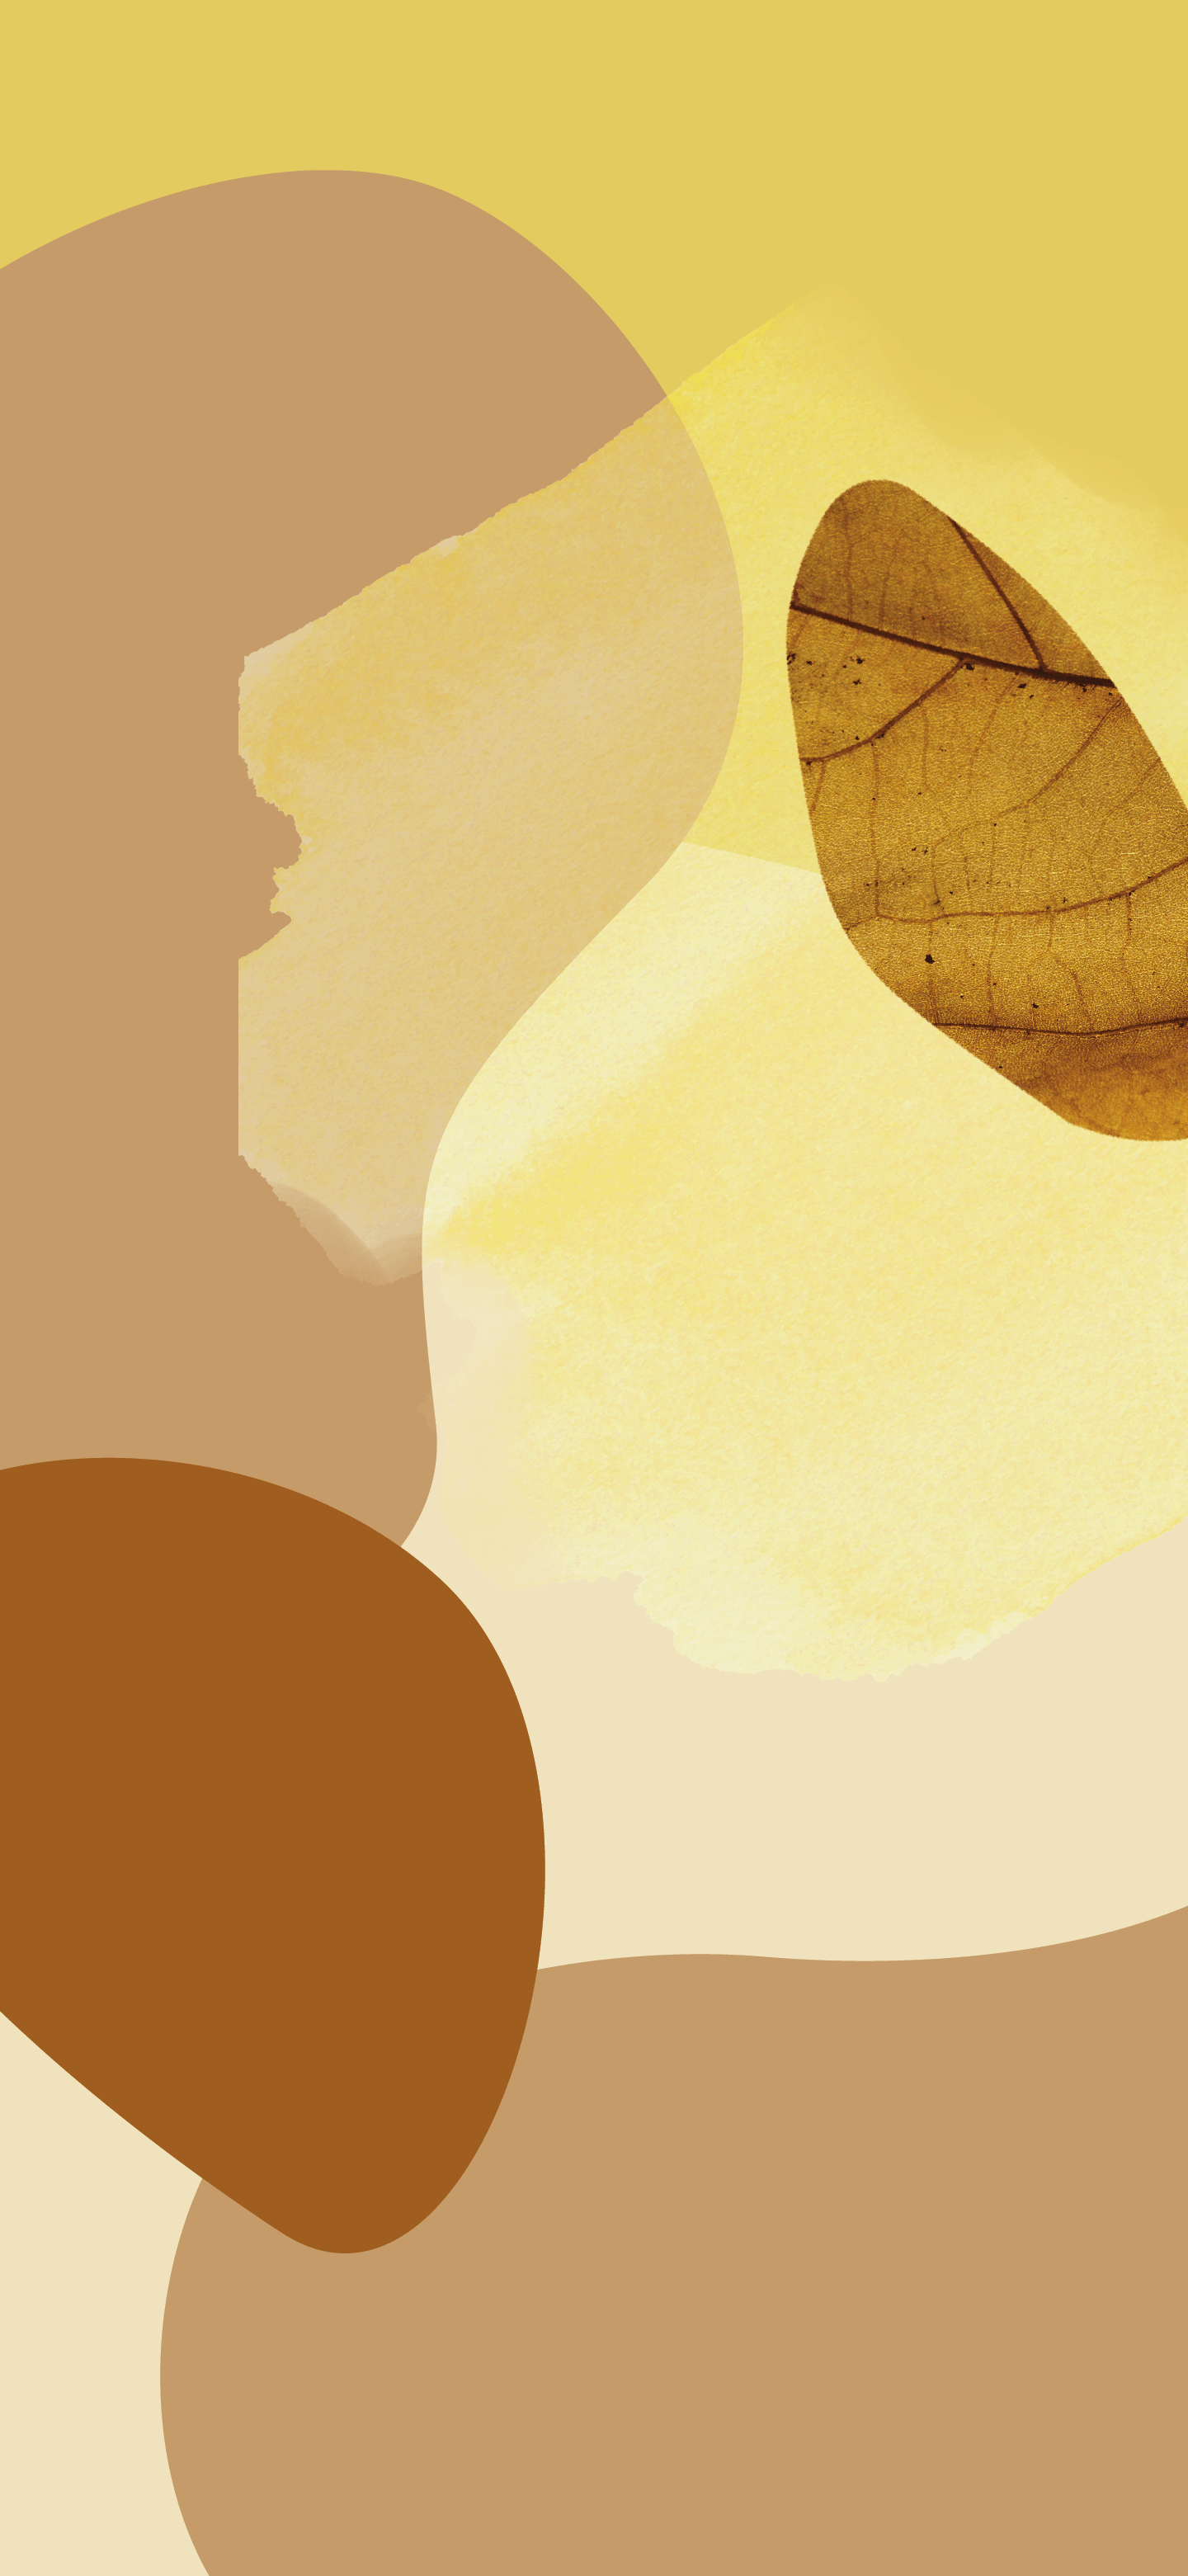 The yellow and brown Pixel 6 wallpaper.